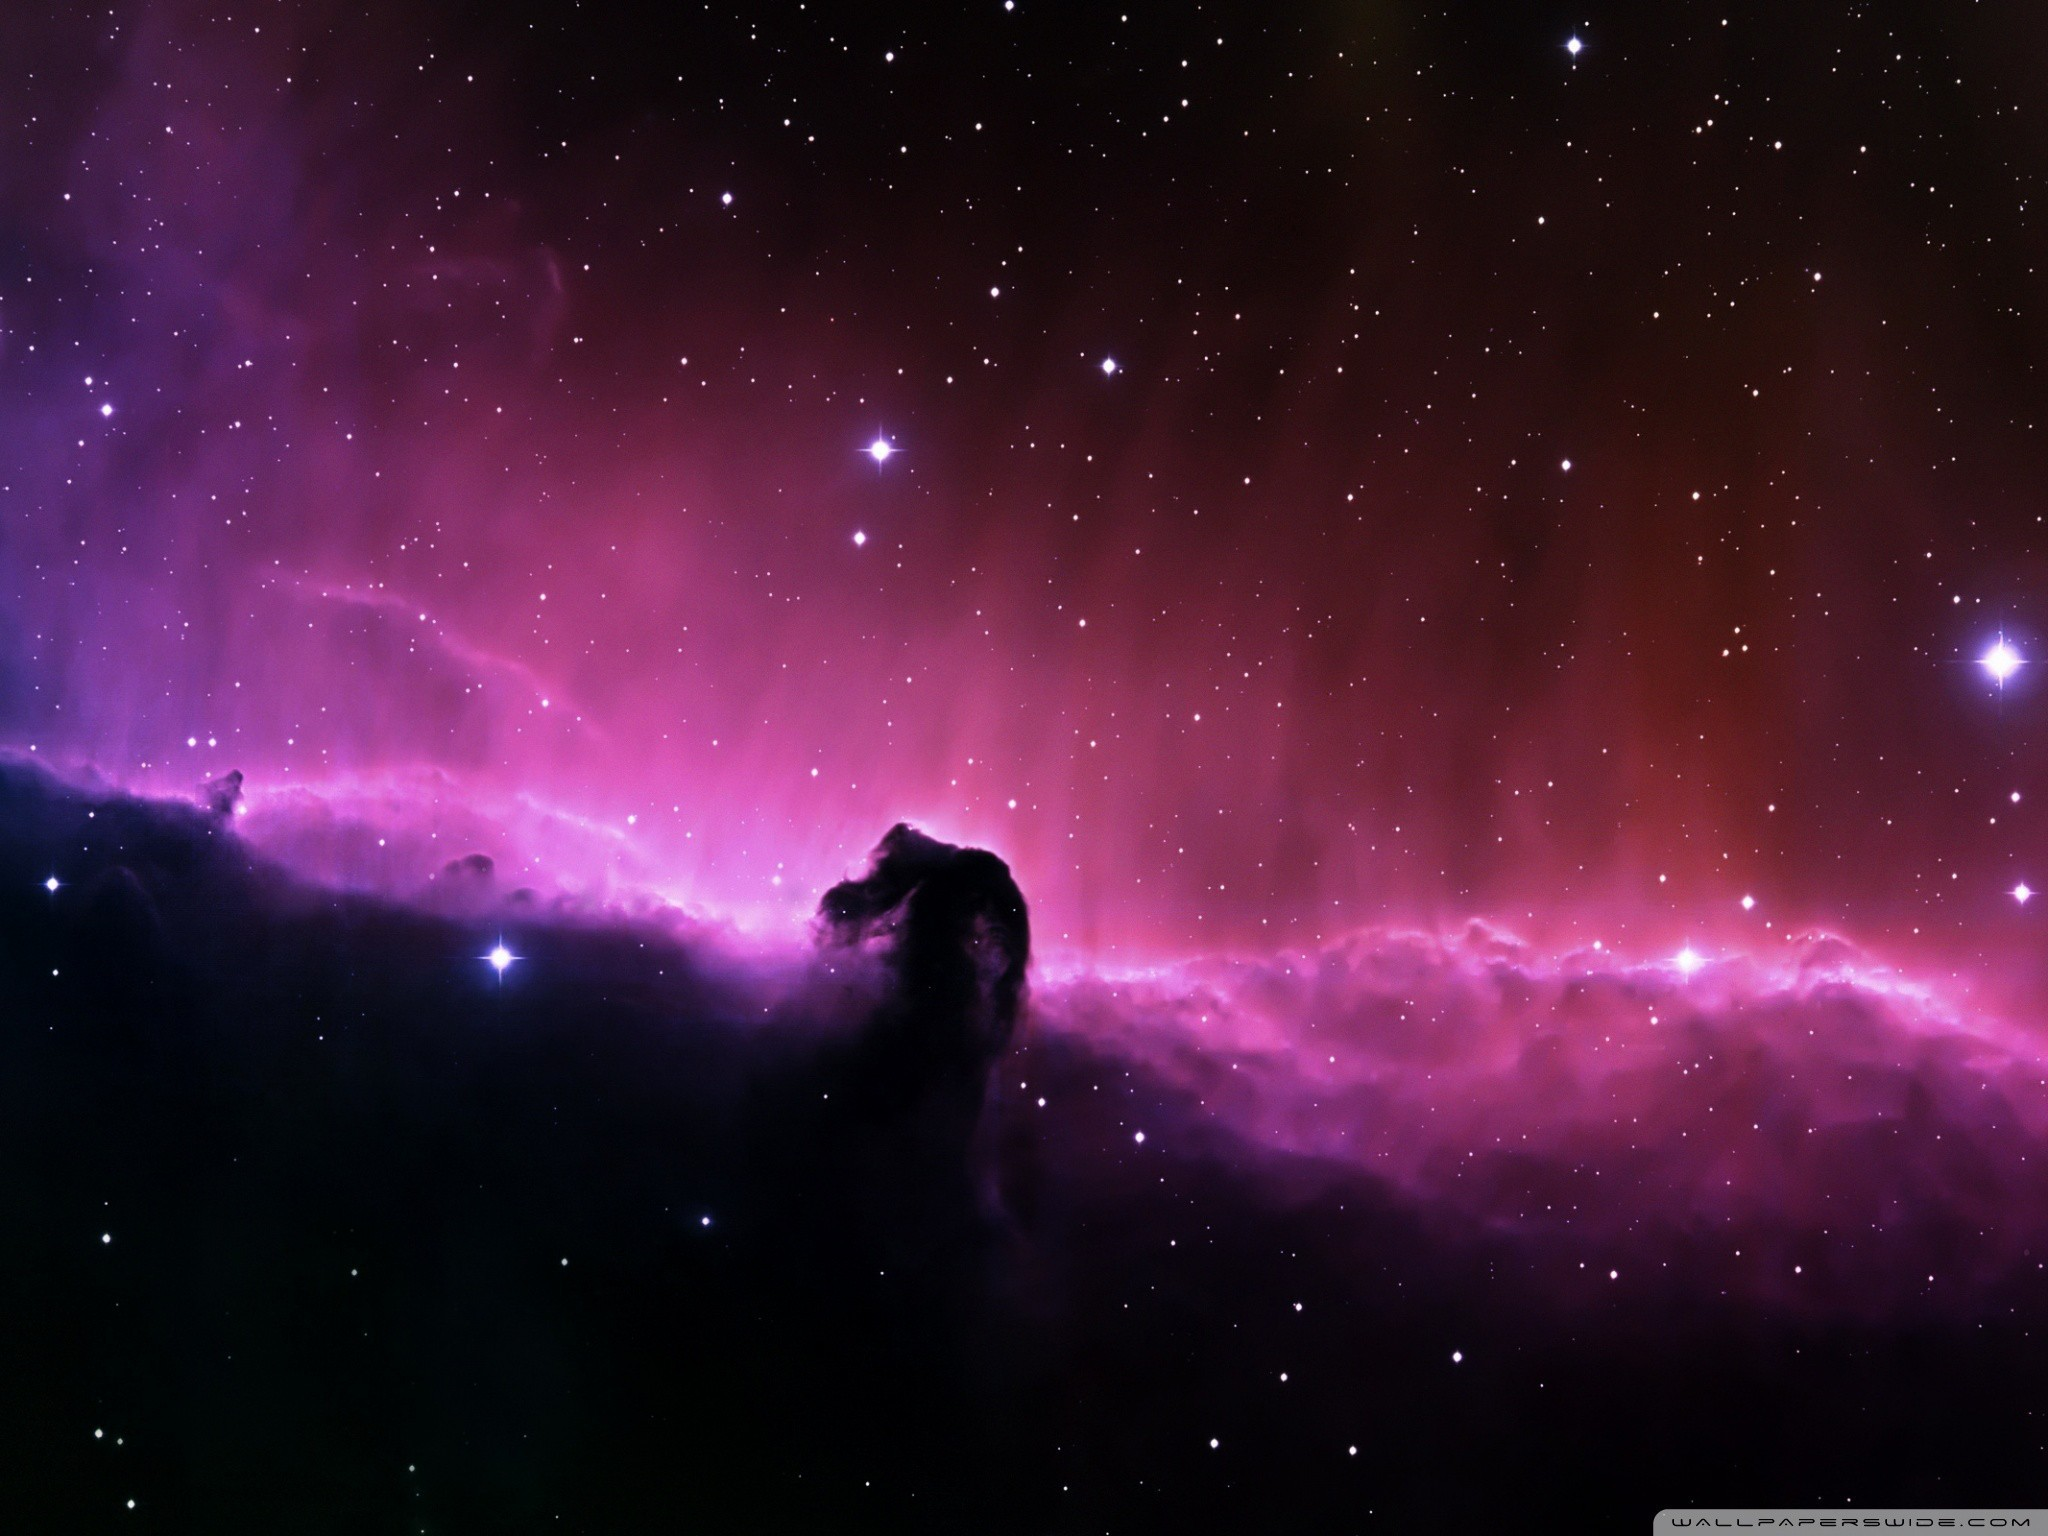 Horsehead Nebula, located in the Orion constellation.